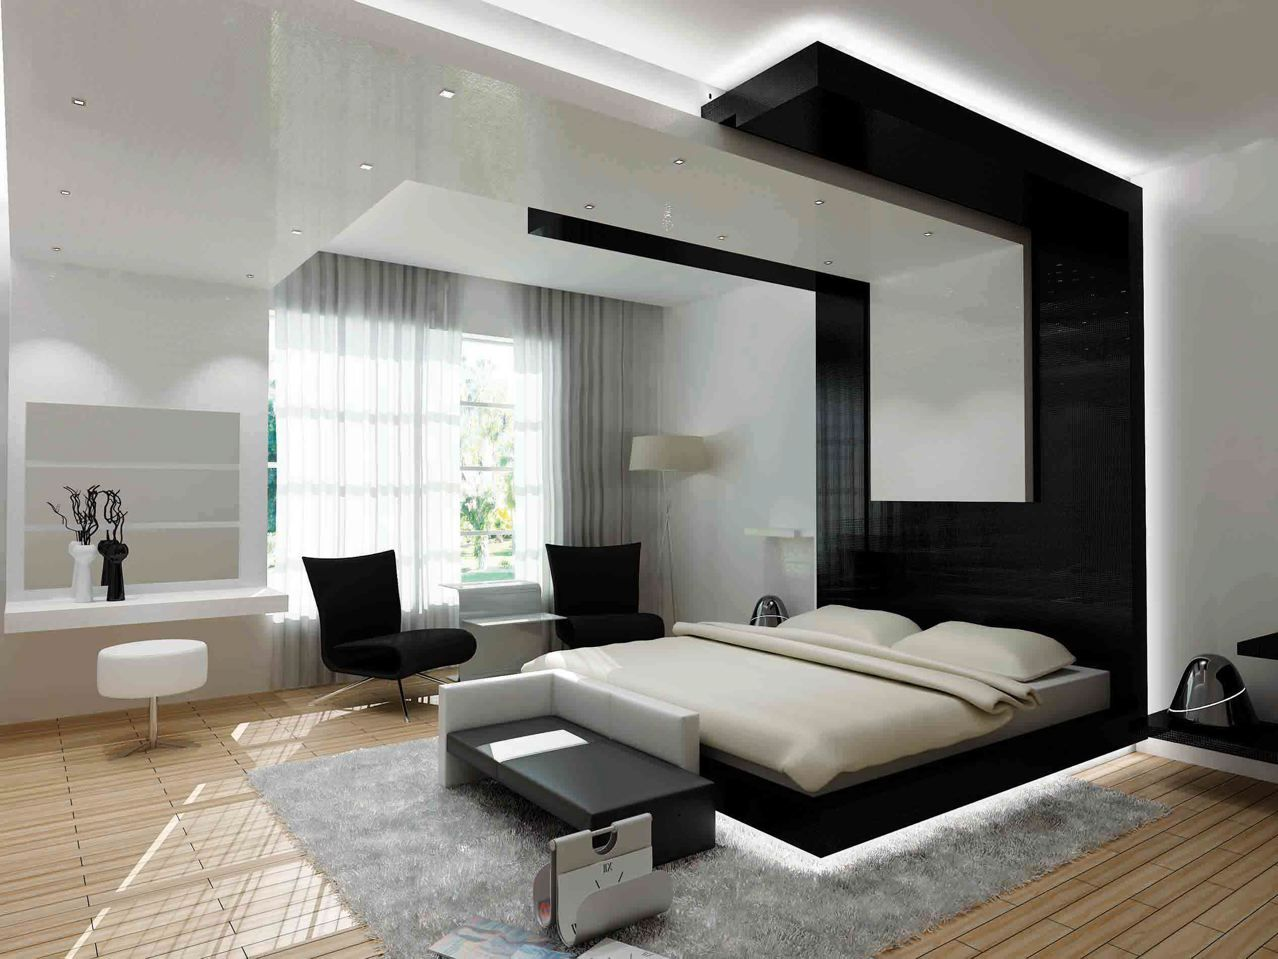 25 Best Modern Bedroom Designs. 25 Best Modern Bedroom Designs   Bedrooms  Contemporary and Modern